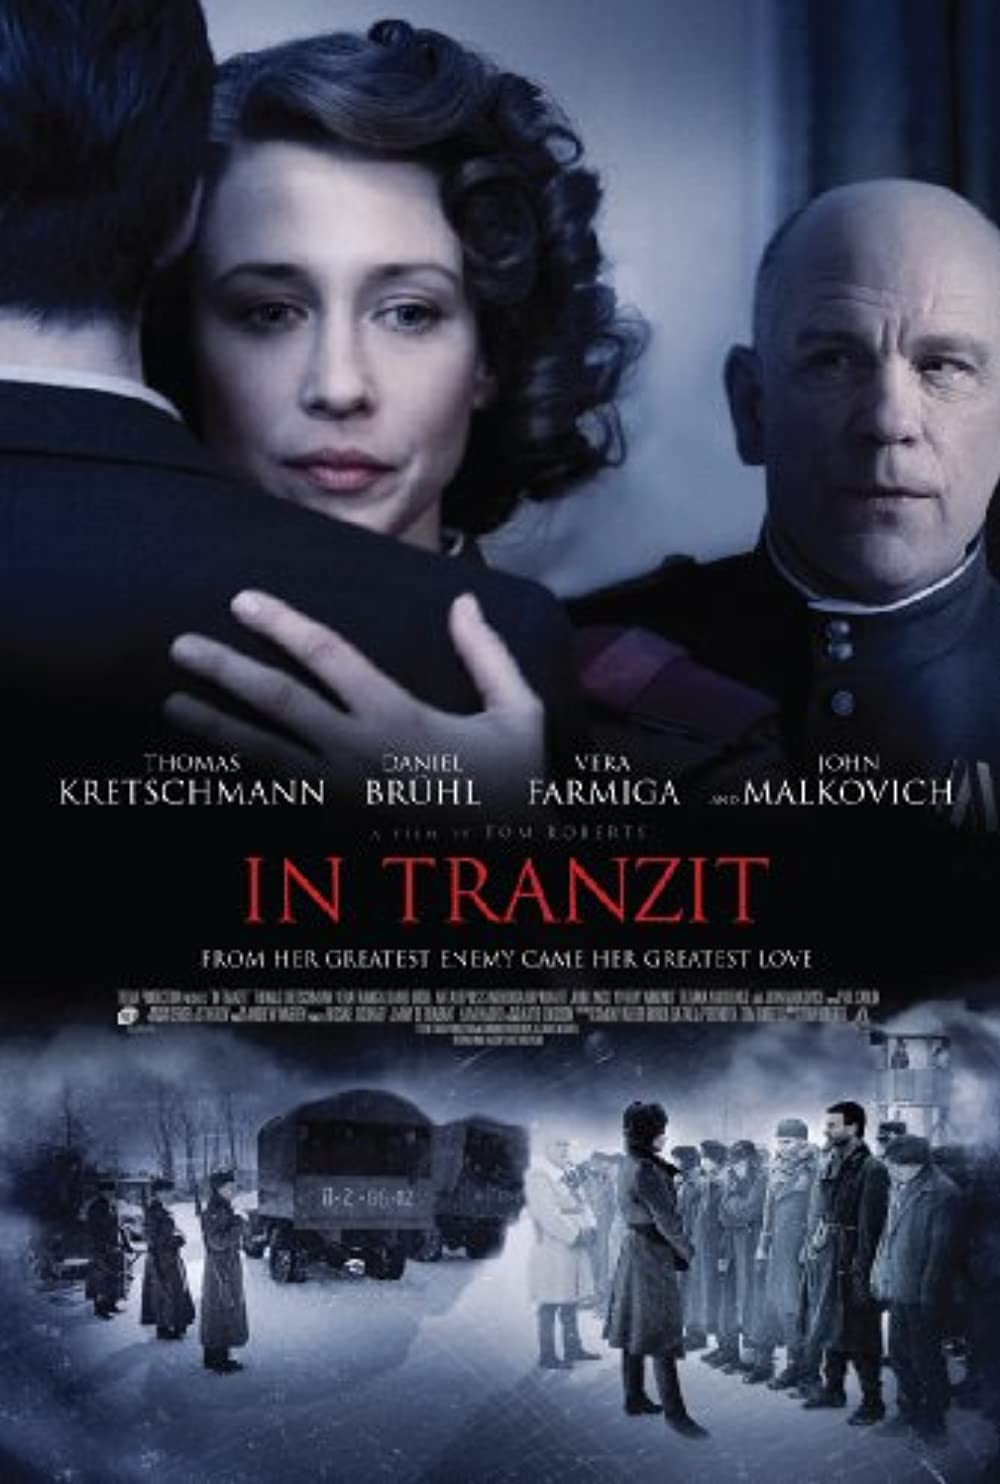 18+ In Tranzit 2008 English 380MB BluRay Download